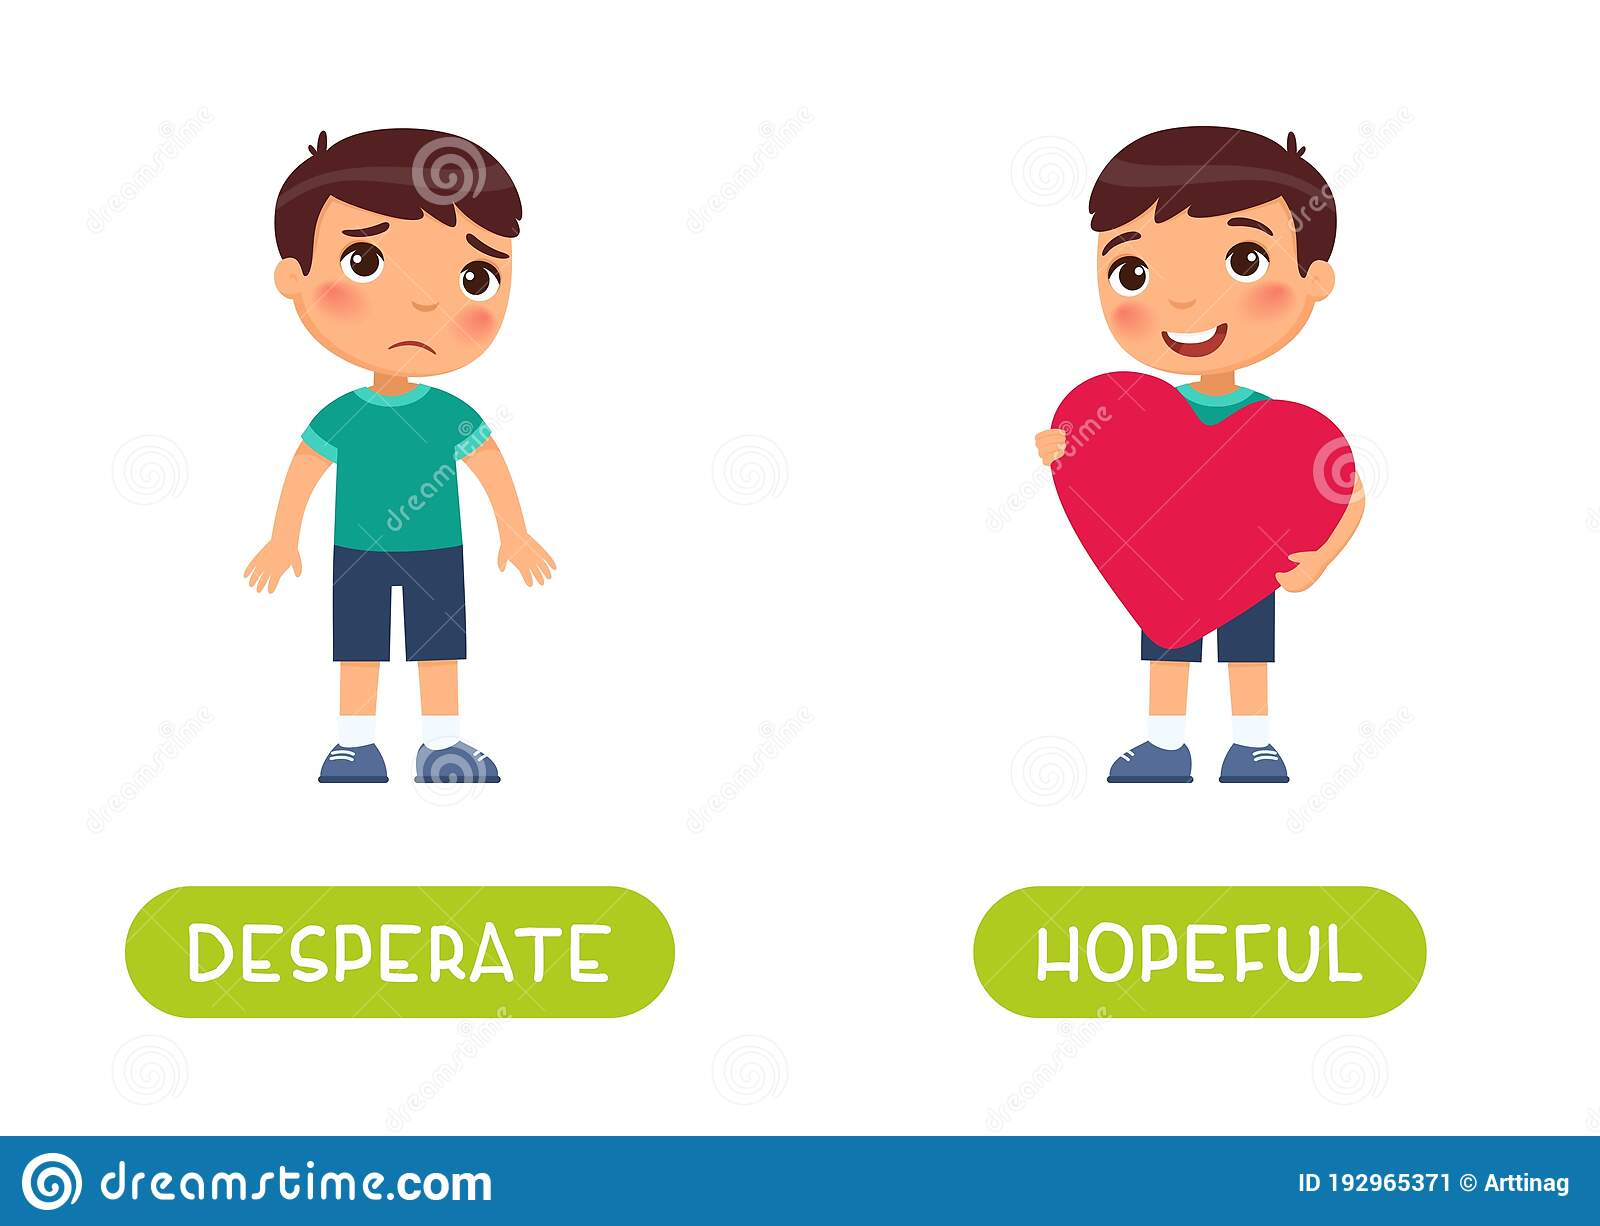 Desperate And Hopeful Antonyms Word Card Vector Template Flashcard For English Language Learning Stock Vector Illustration Of Cartoon Concept 192965371 American farmers are in word originlate middle english (in the sense 'in despair'): dreamstime com